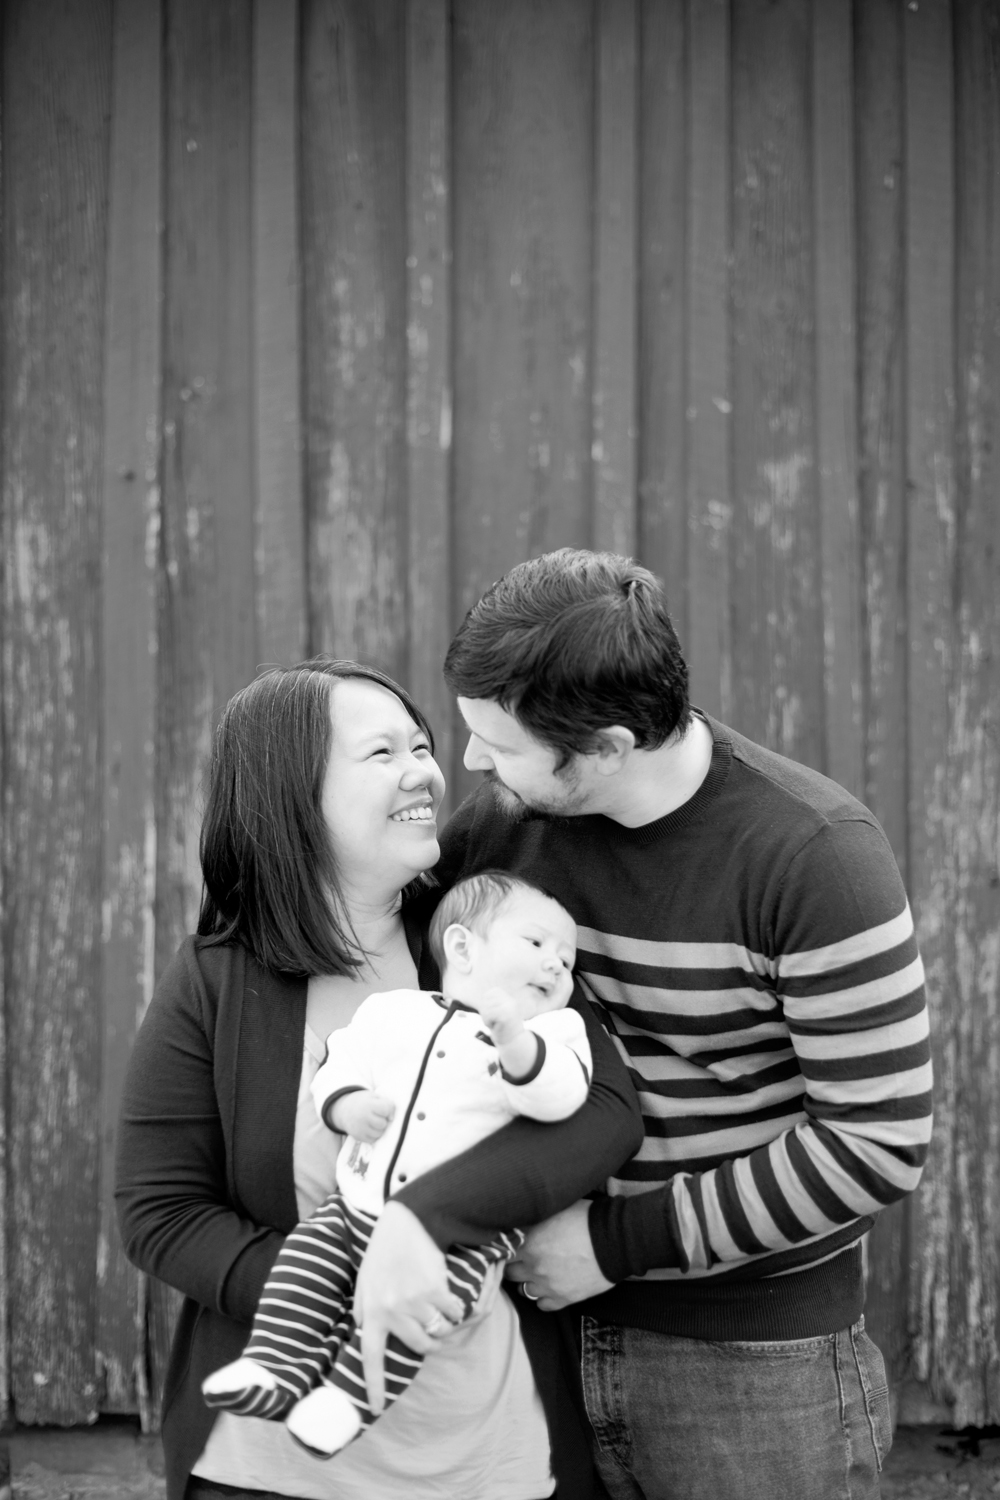 Posing ideas for couple with a baby